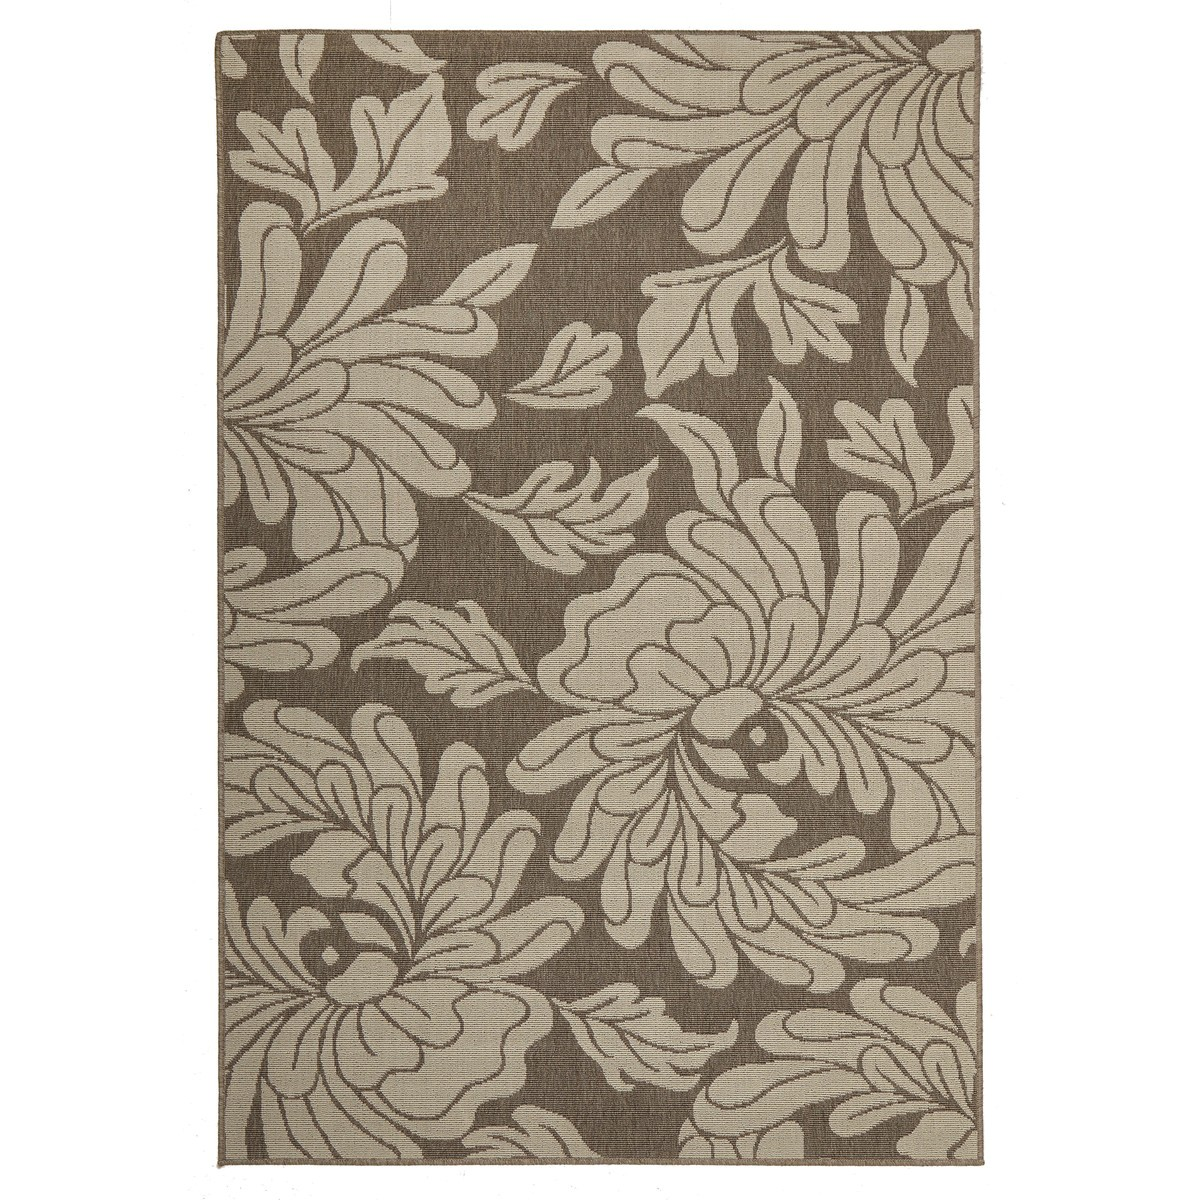 Alfresco Bloom Egyptian Made Outdoor Rug, 160x110cm, Beige / Brown